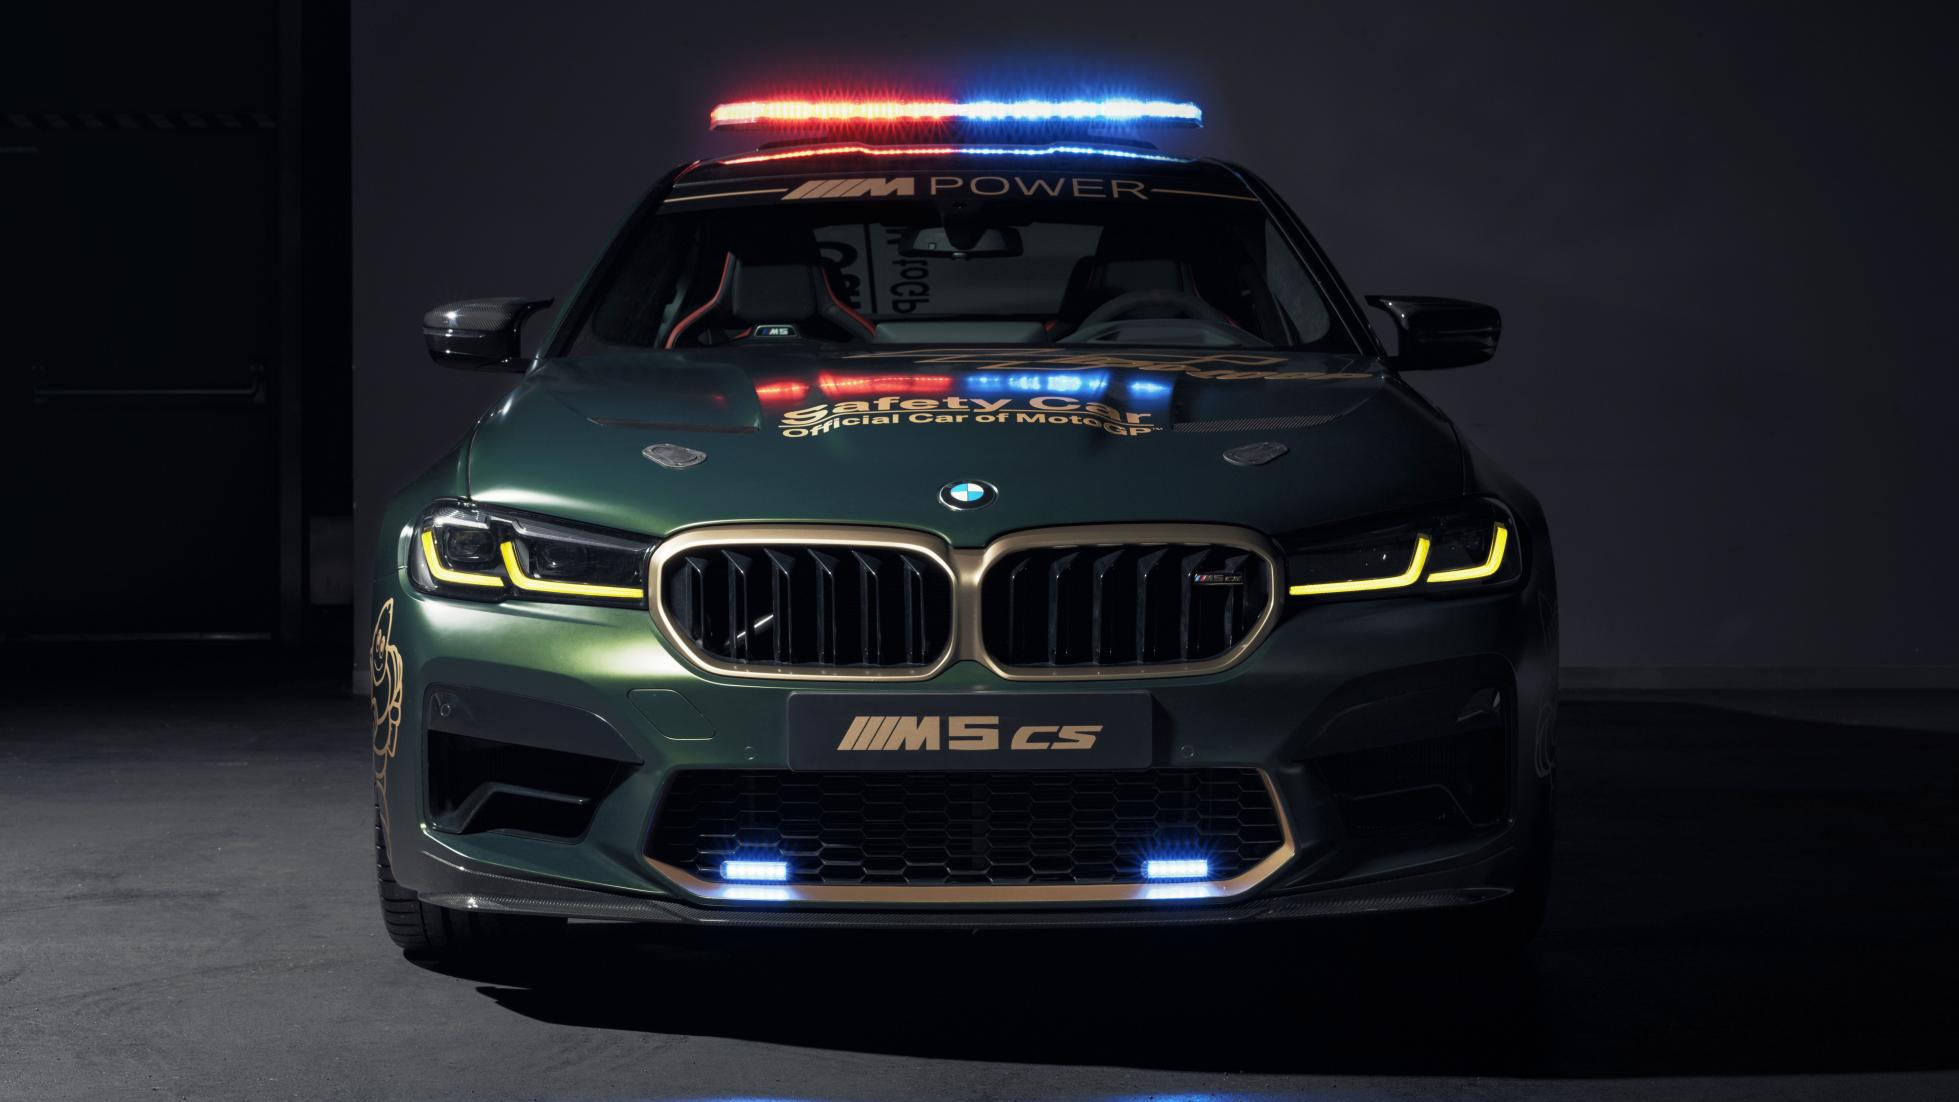 The BMW M5 CS as a MotoGP safety car, front view